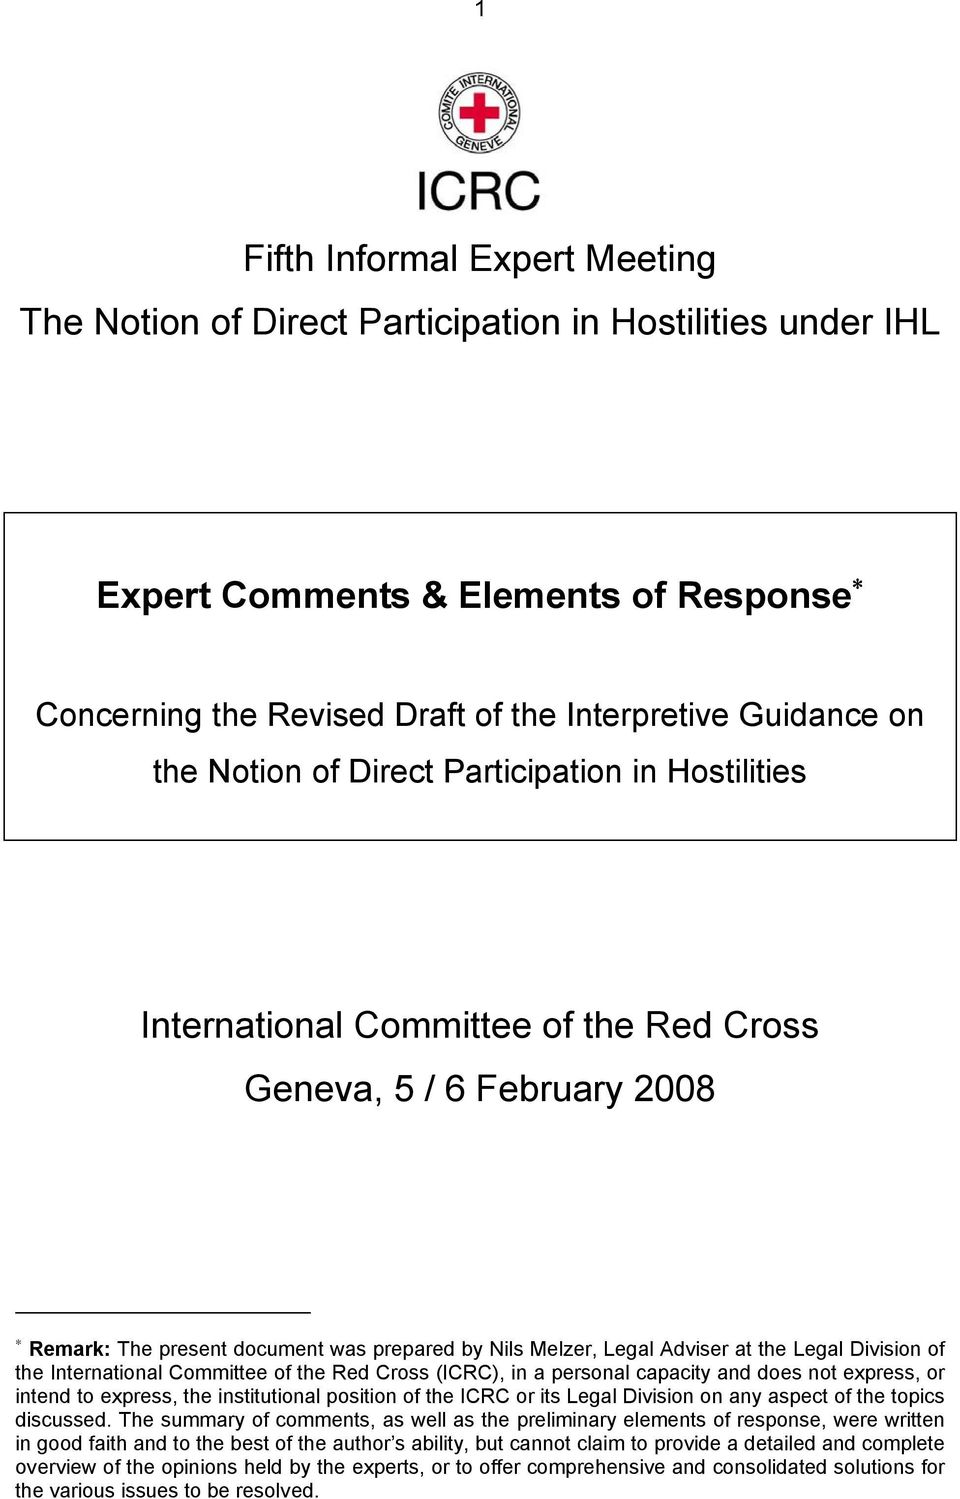 Division of the International Committee of the Red Cross (ICRC), in a personal capacity and does not express, or intend to express, the institutional position of the ICRC or its Legal Division on any